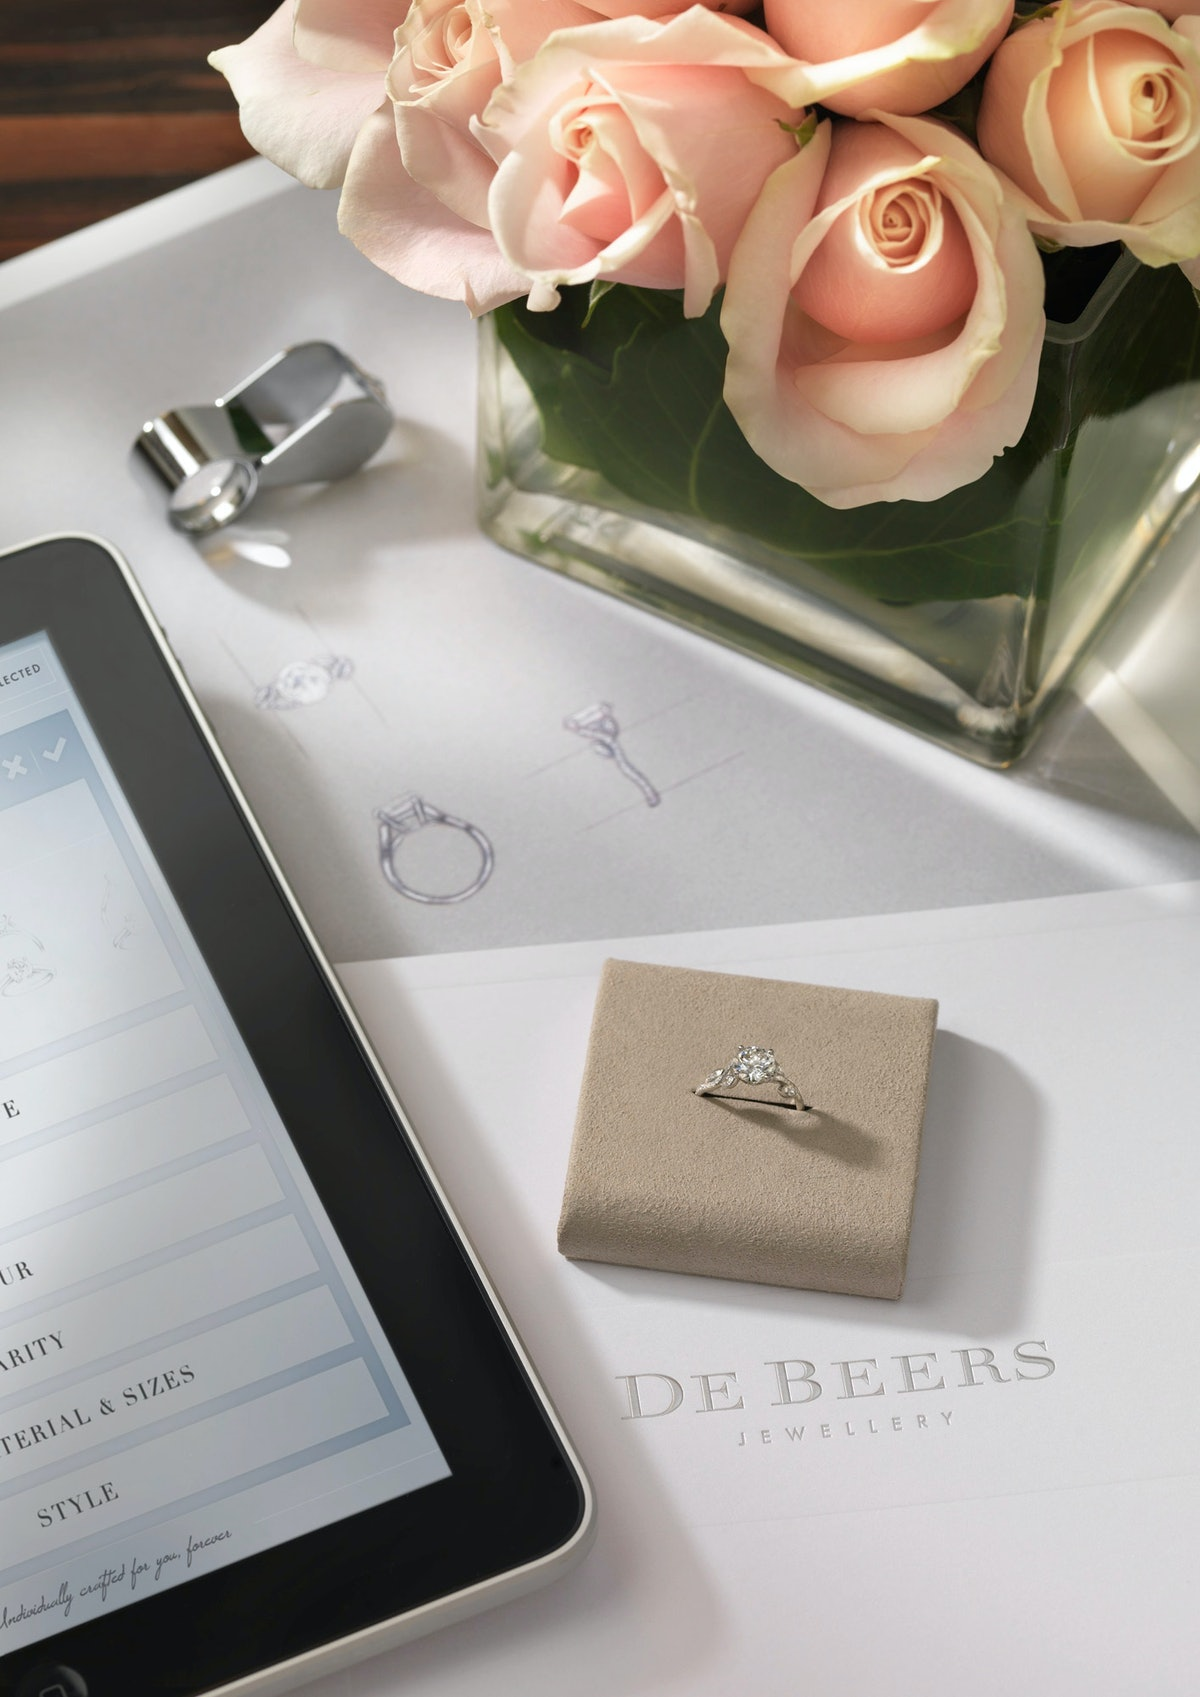 De Beers new iPad app for picking out the perfect engagement rings